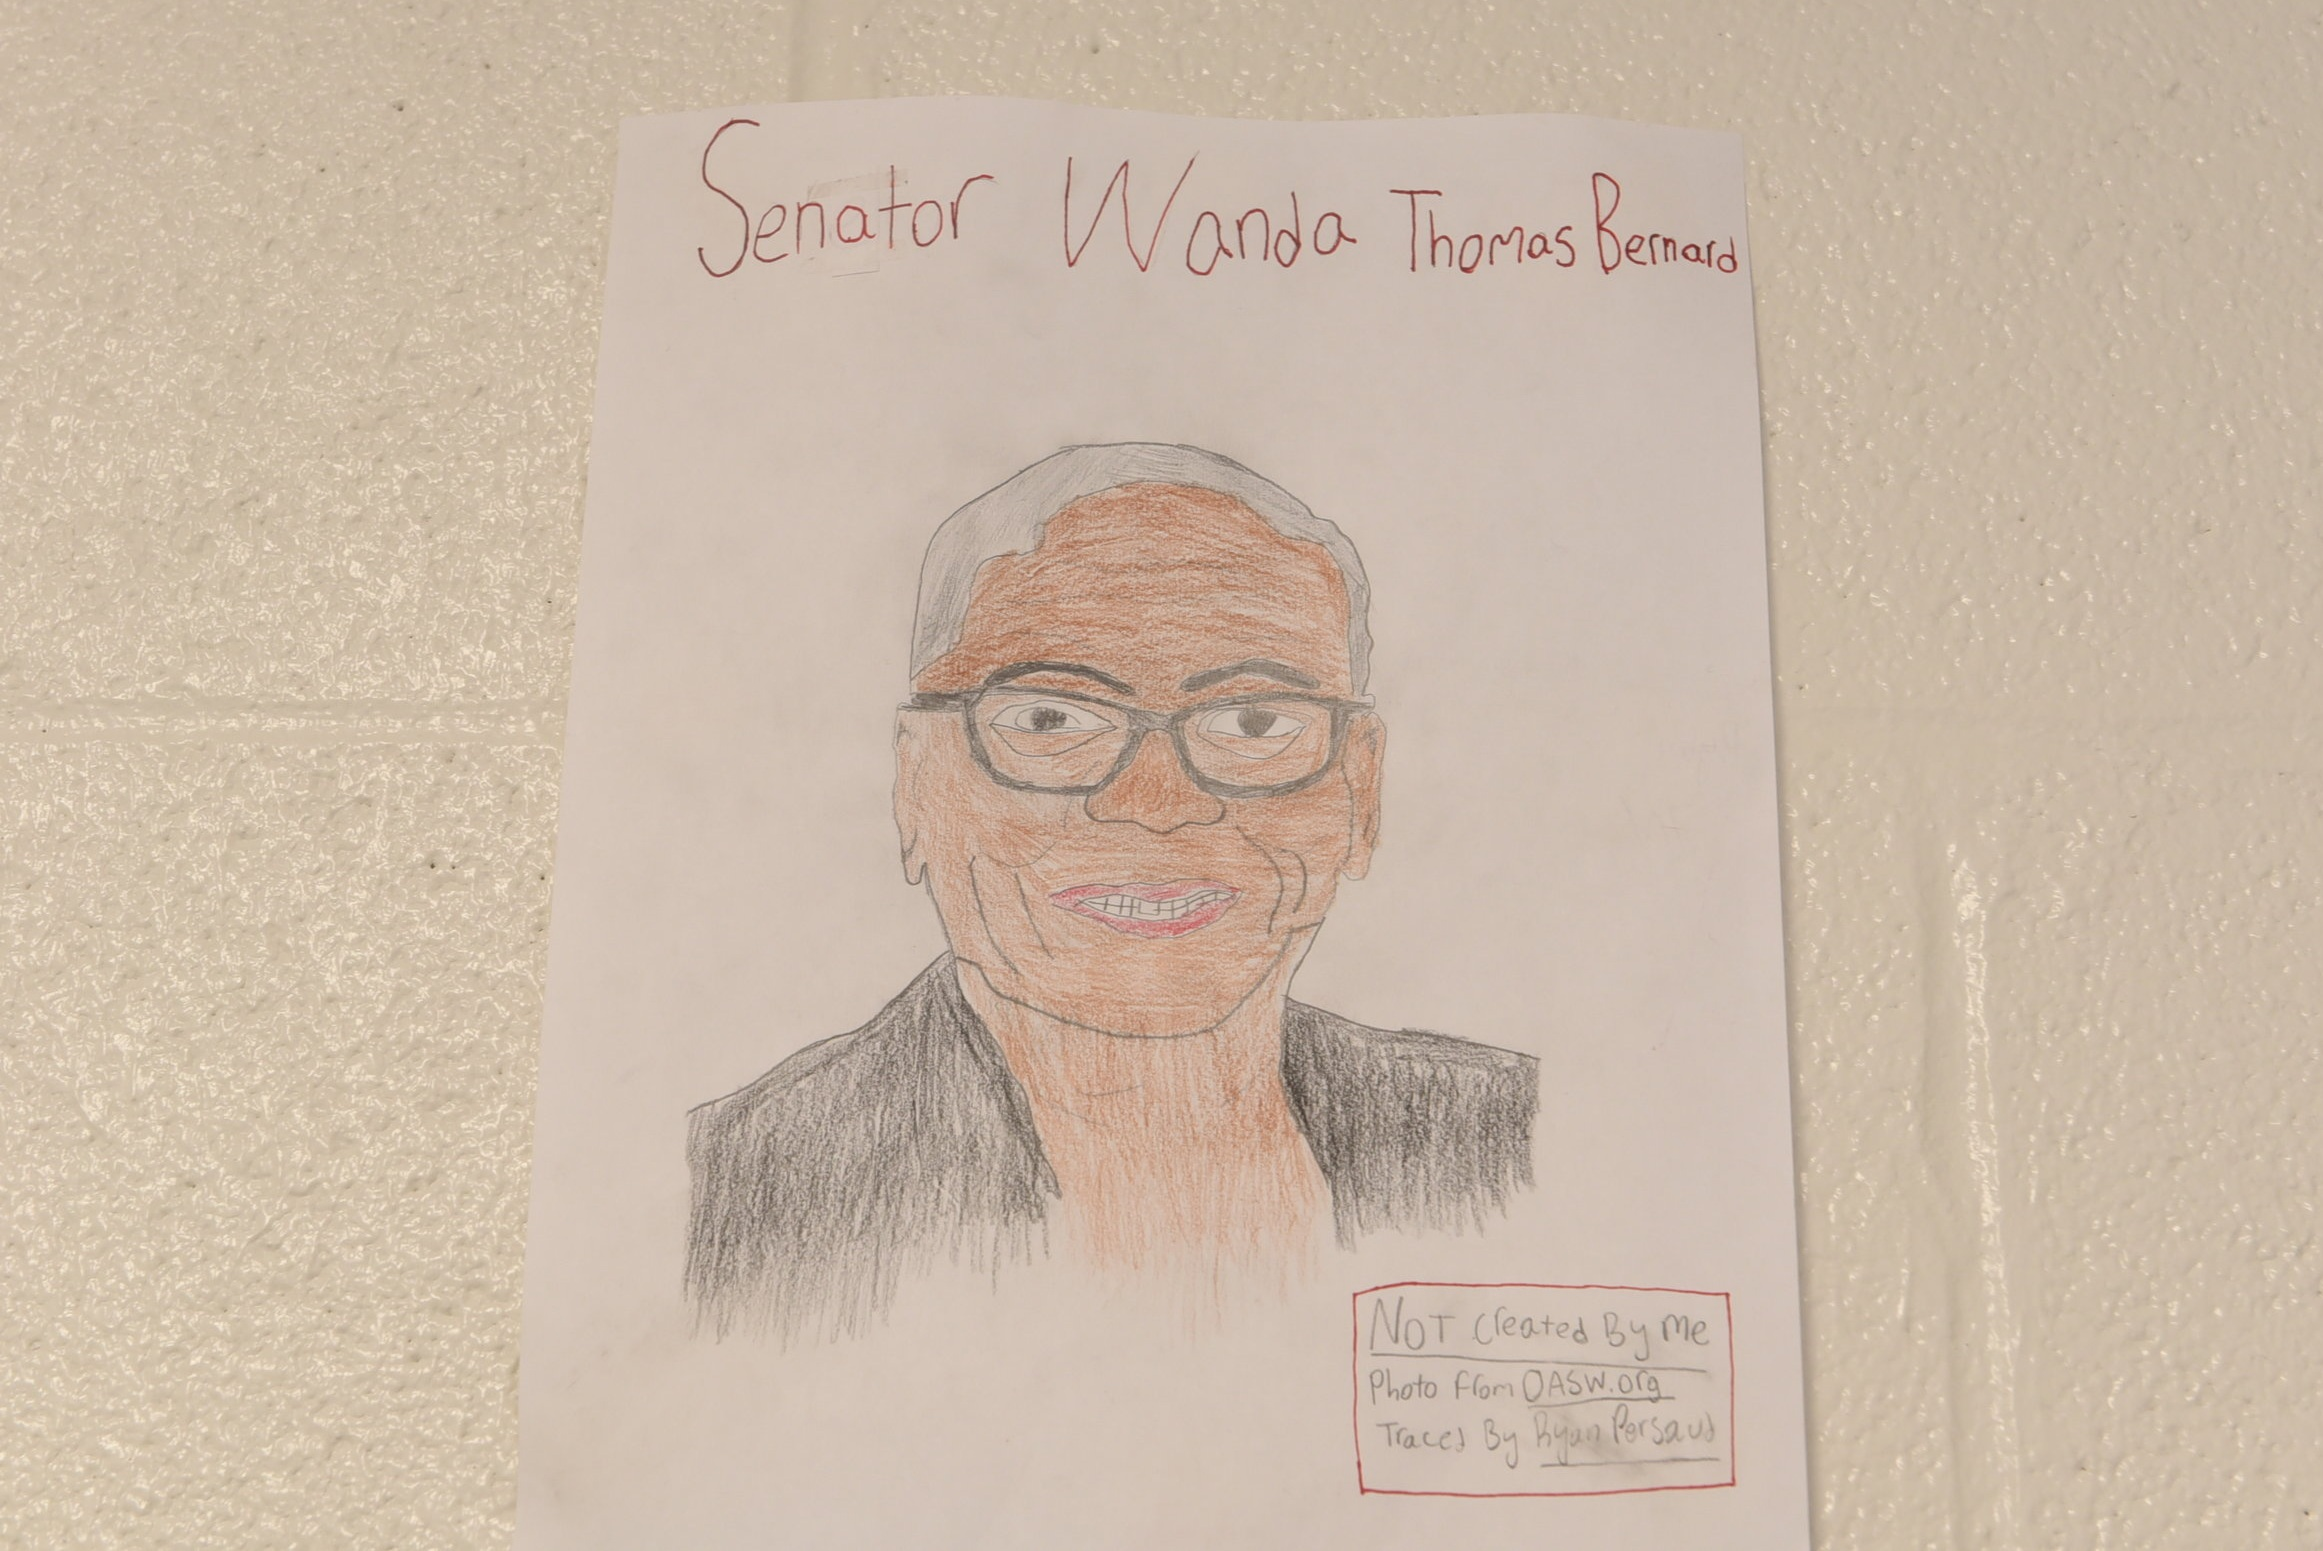 A sketch of Senator Wanda Thomas Bernard adorns the new school walls